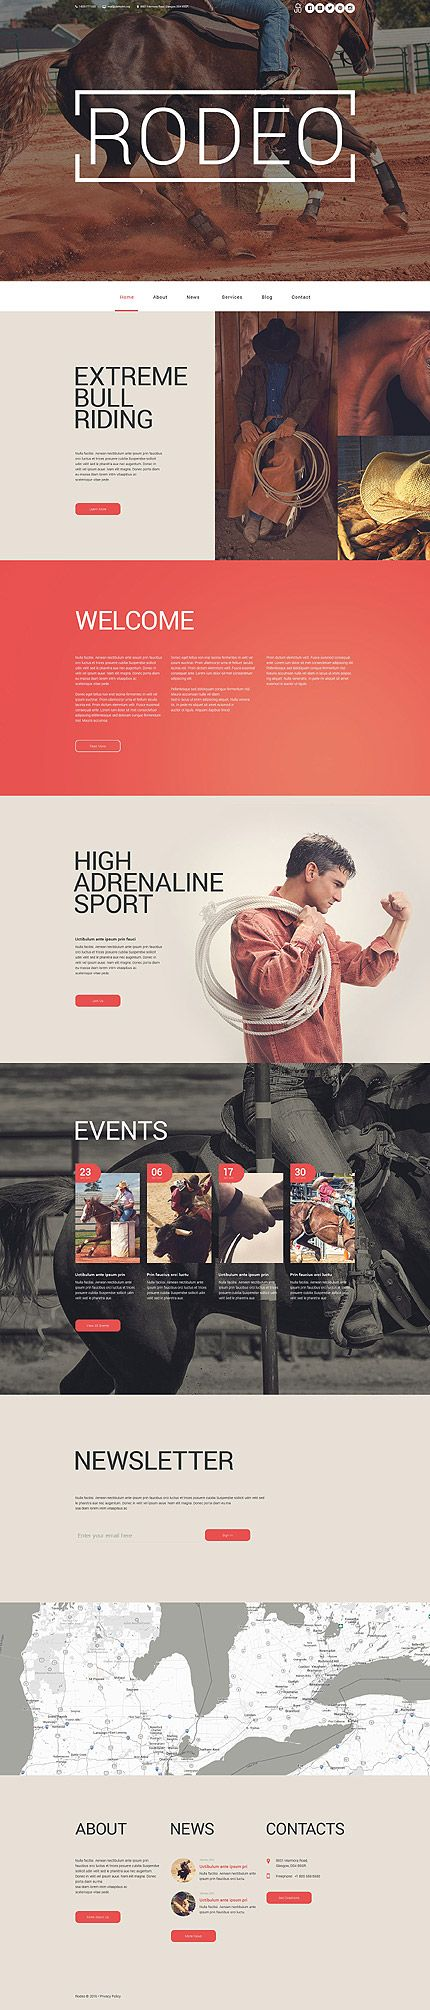 Design Needs Time - Get Template Espresso! Sport & Entertainment website…